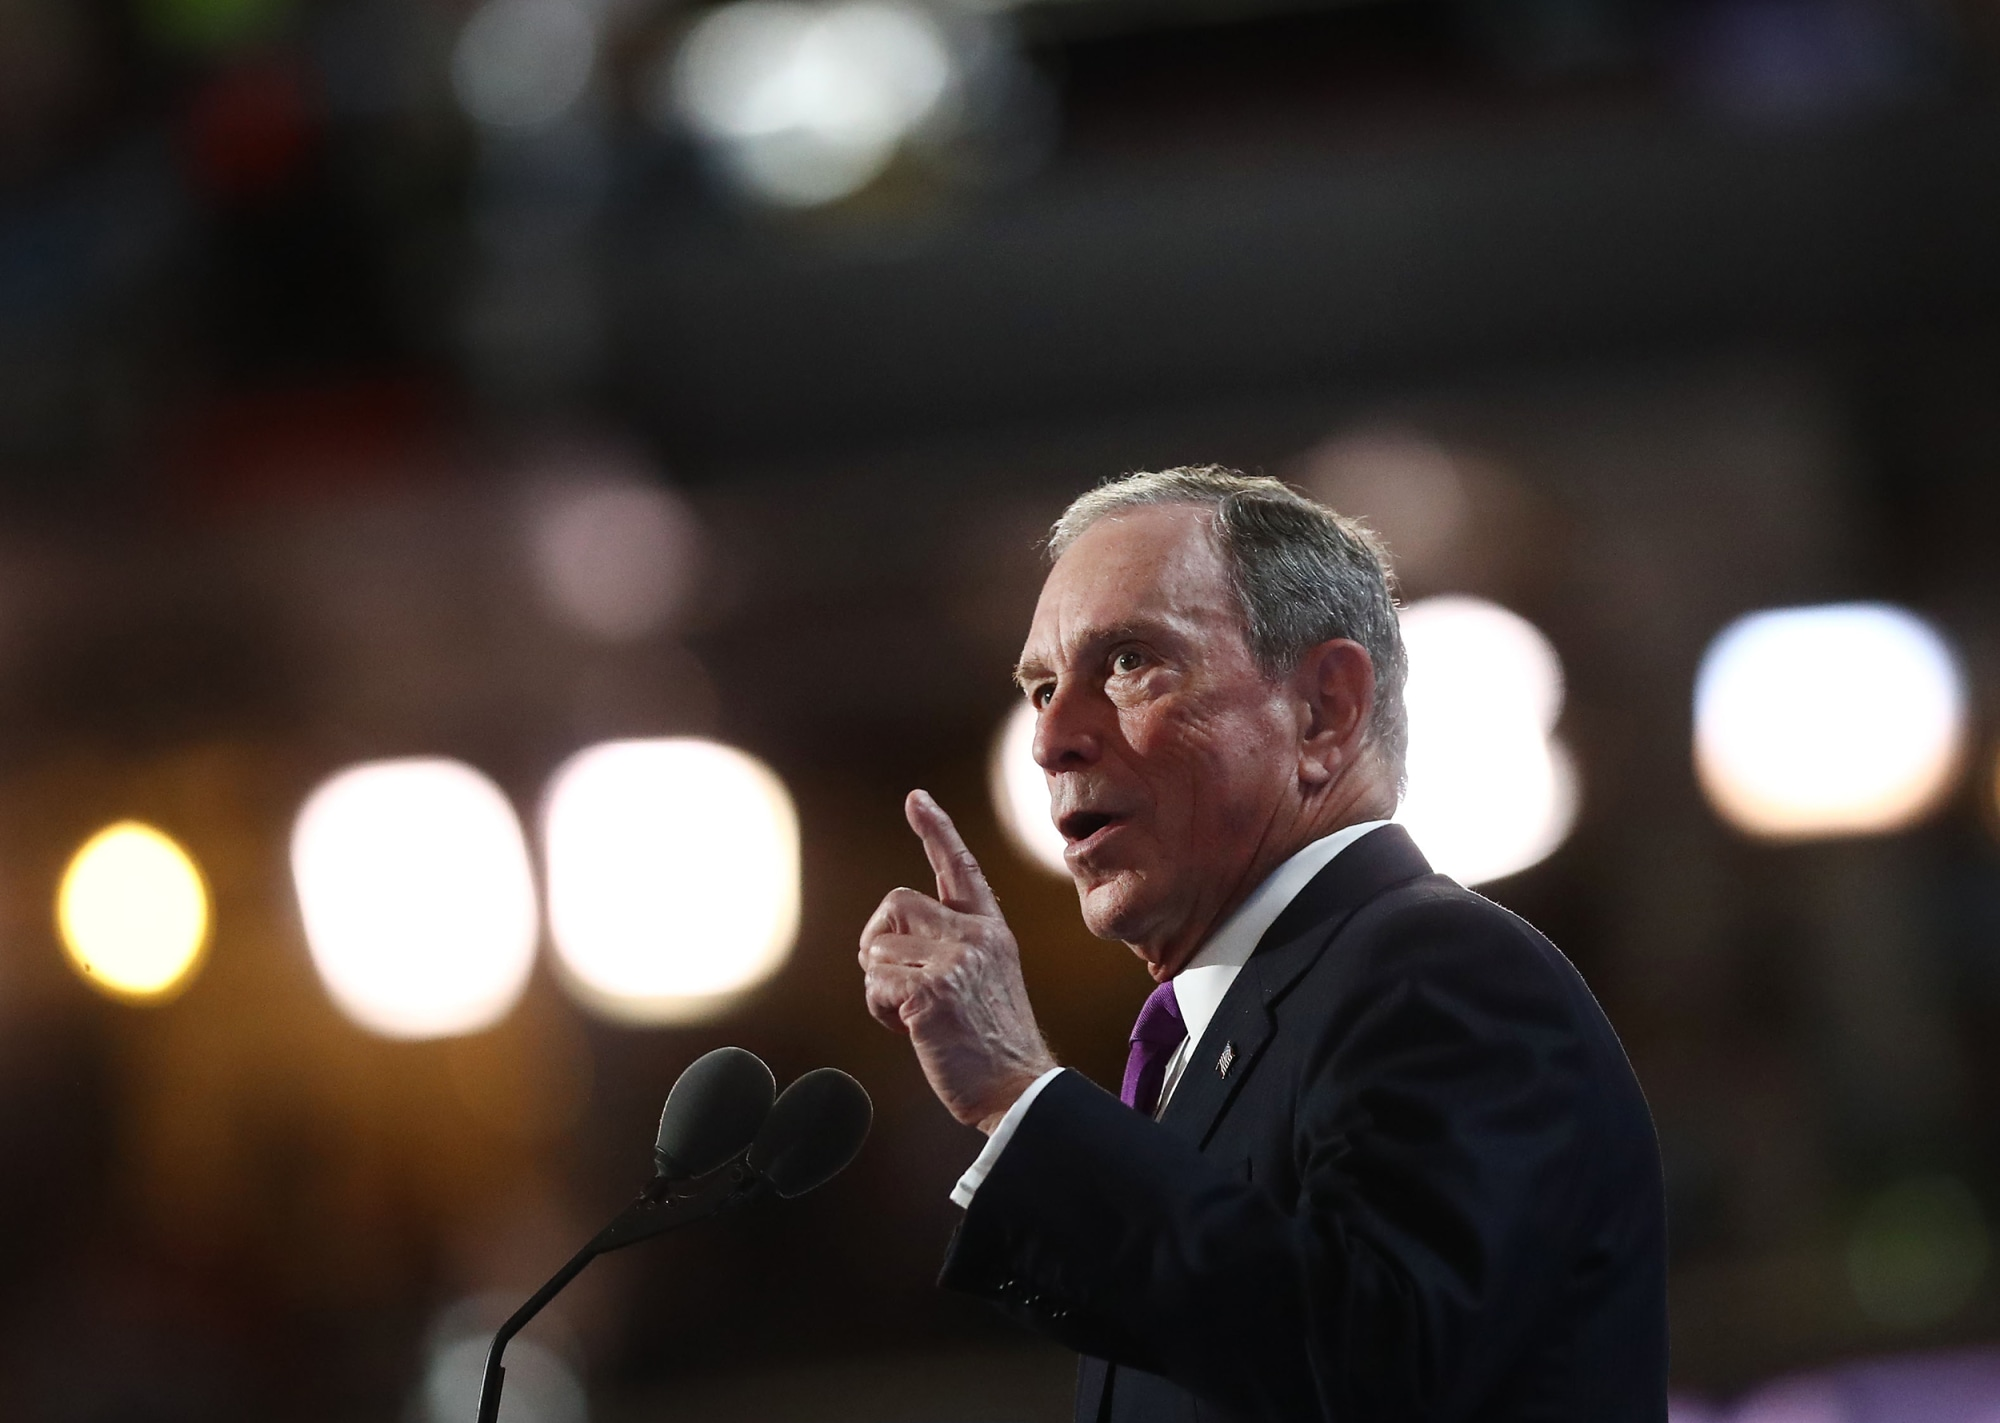 If Michael Bloomberg moves forward with his plans to run for president, his financial information company will be run by an expanded management committee to run the firm in his absence,